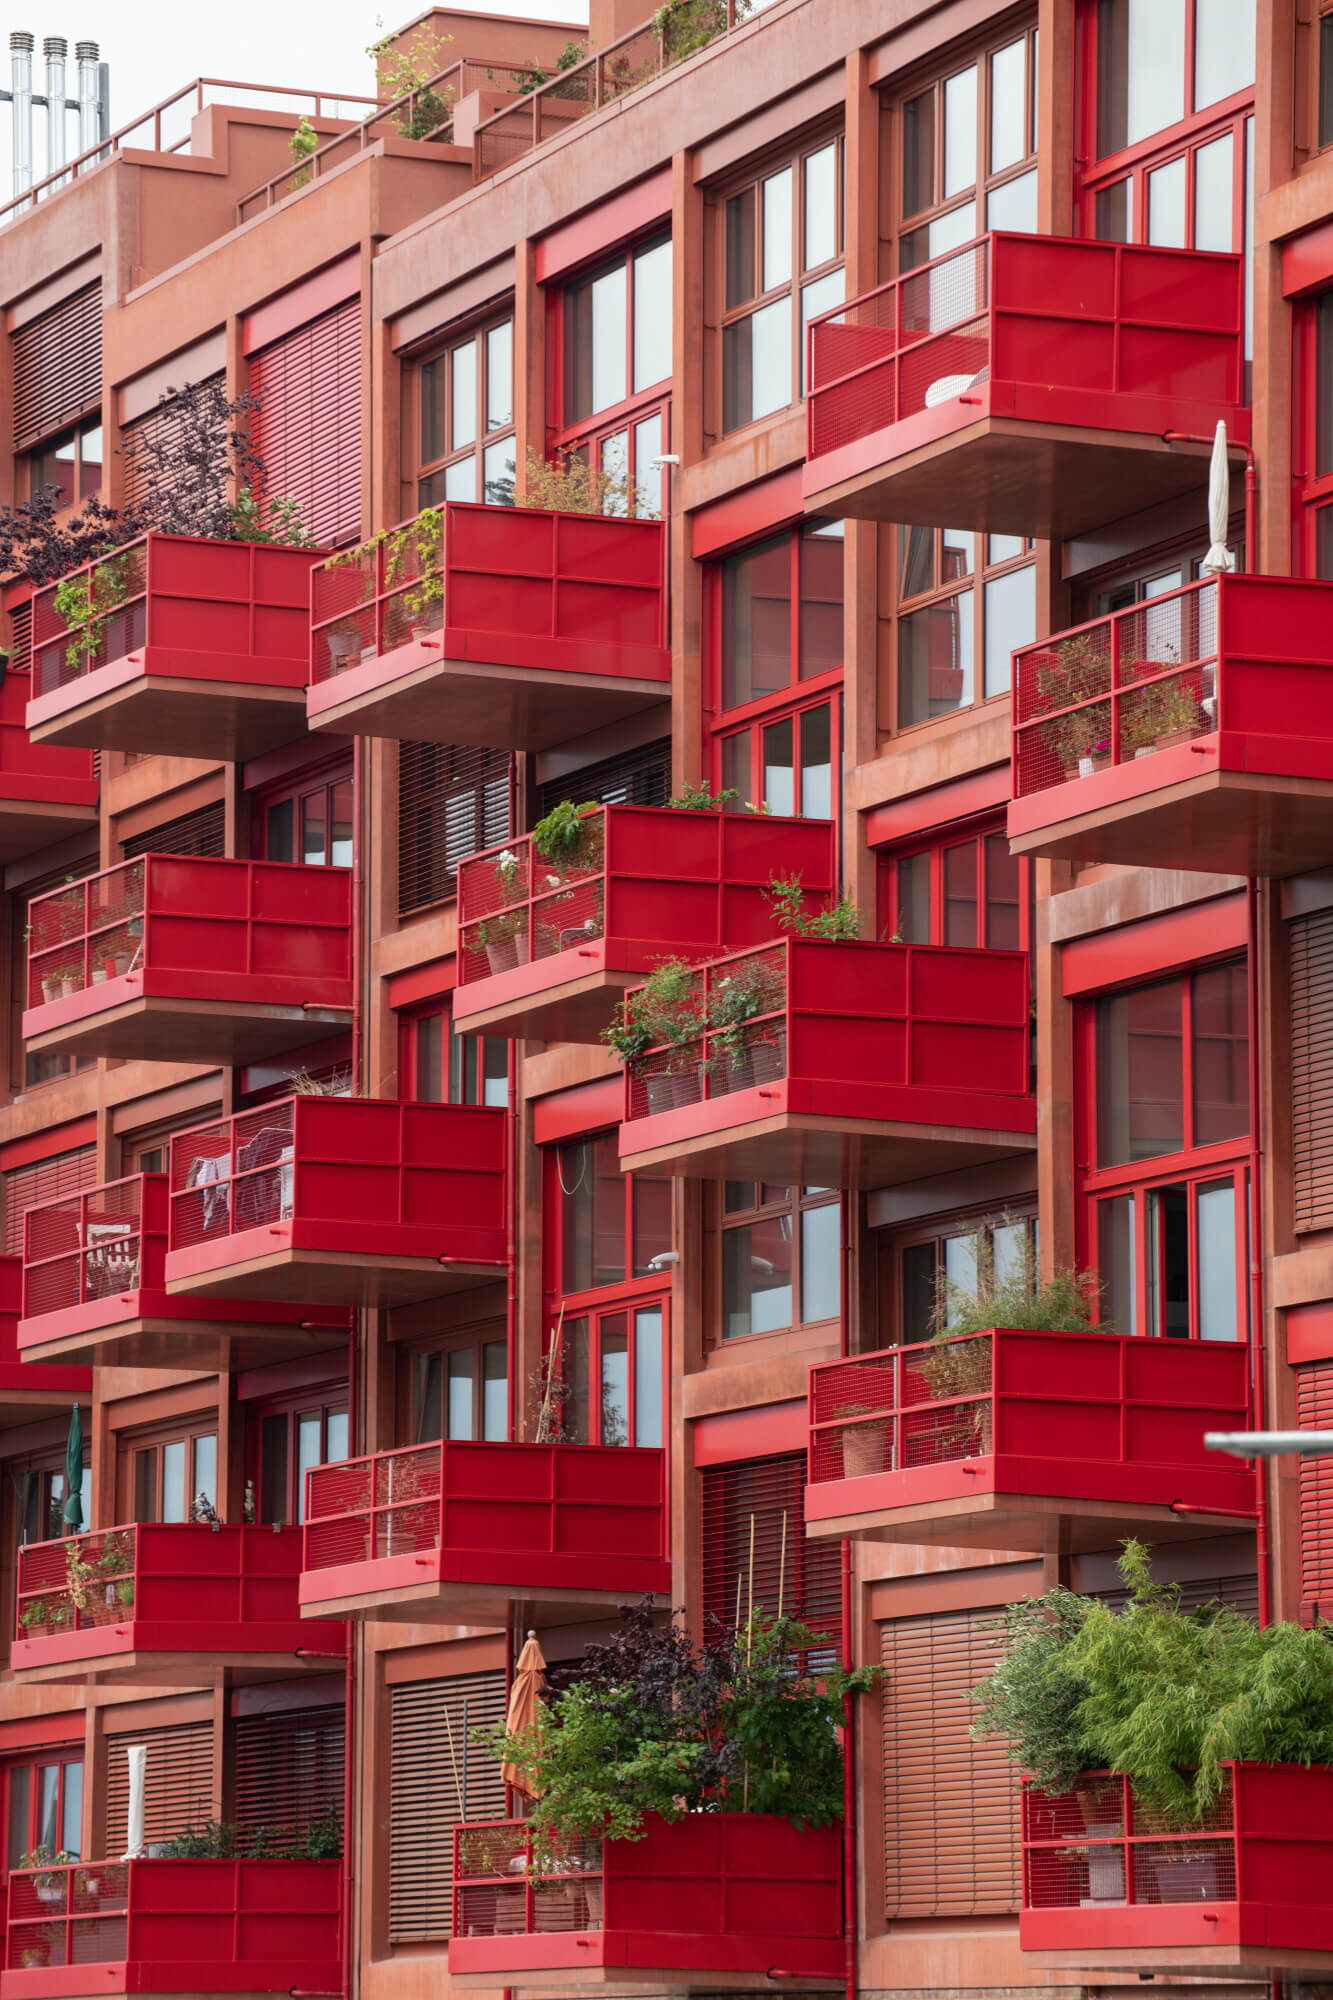 Red balconies, red architecture, Am Lokdepot